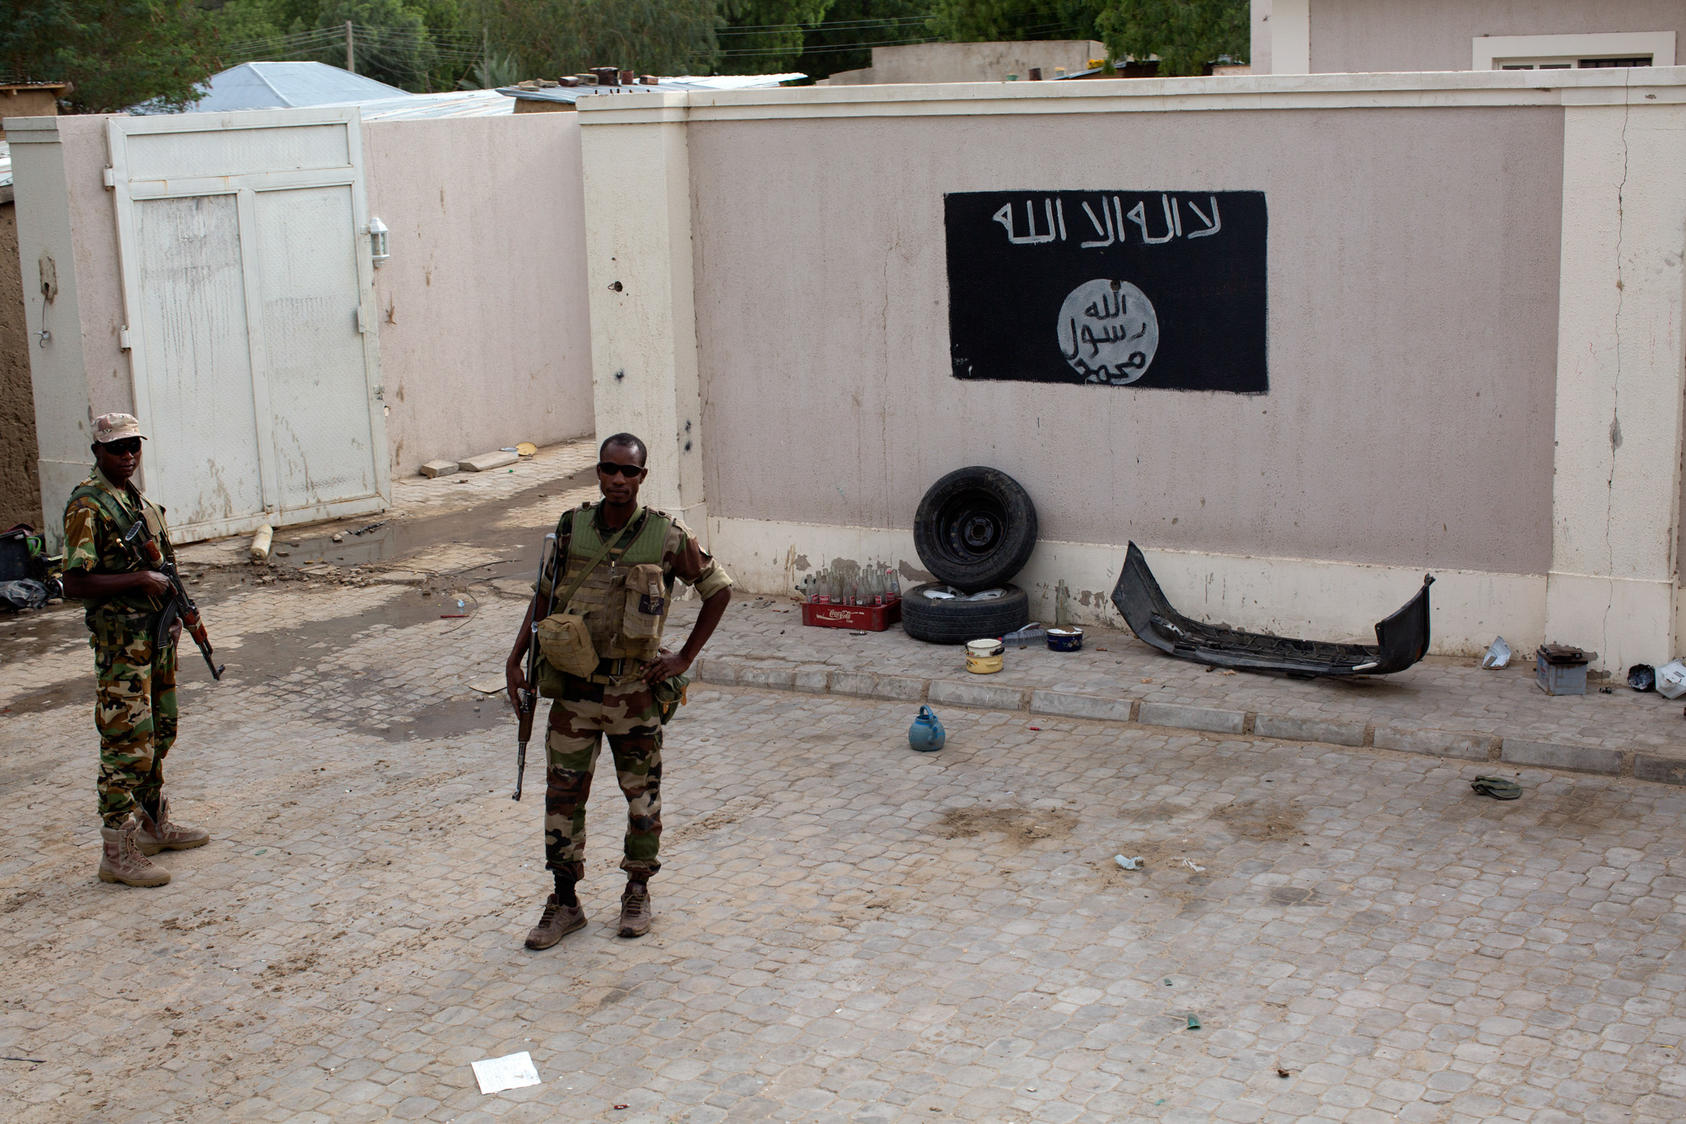 Chadian soldiers stand near a Boko Haram flag, one of many in the now-liberated — and deserted — city of Damasak, in northern Nigeria, March 18, 2015. Though the Nigerian government insists its forces have chased Boko Haram out if much of its territory, only soldiers from Chad and Niger were involved in liberating this once-thriving city of 200,000.